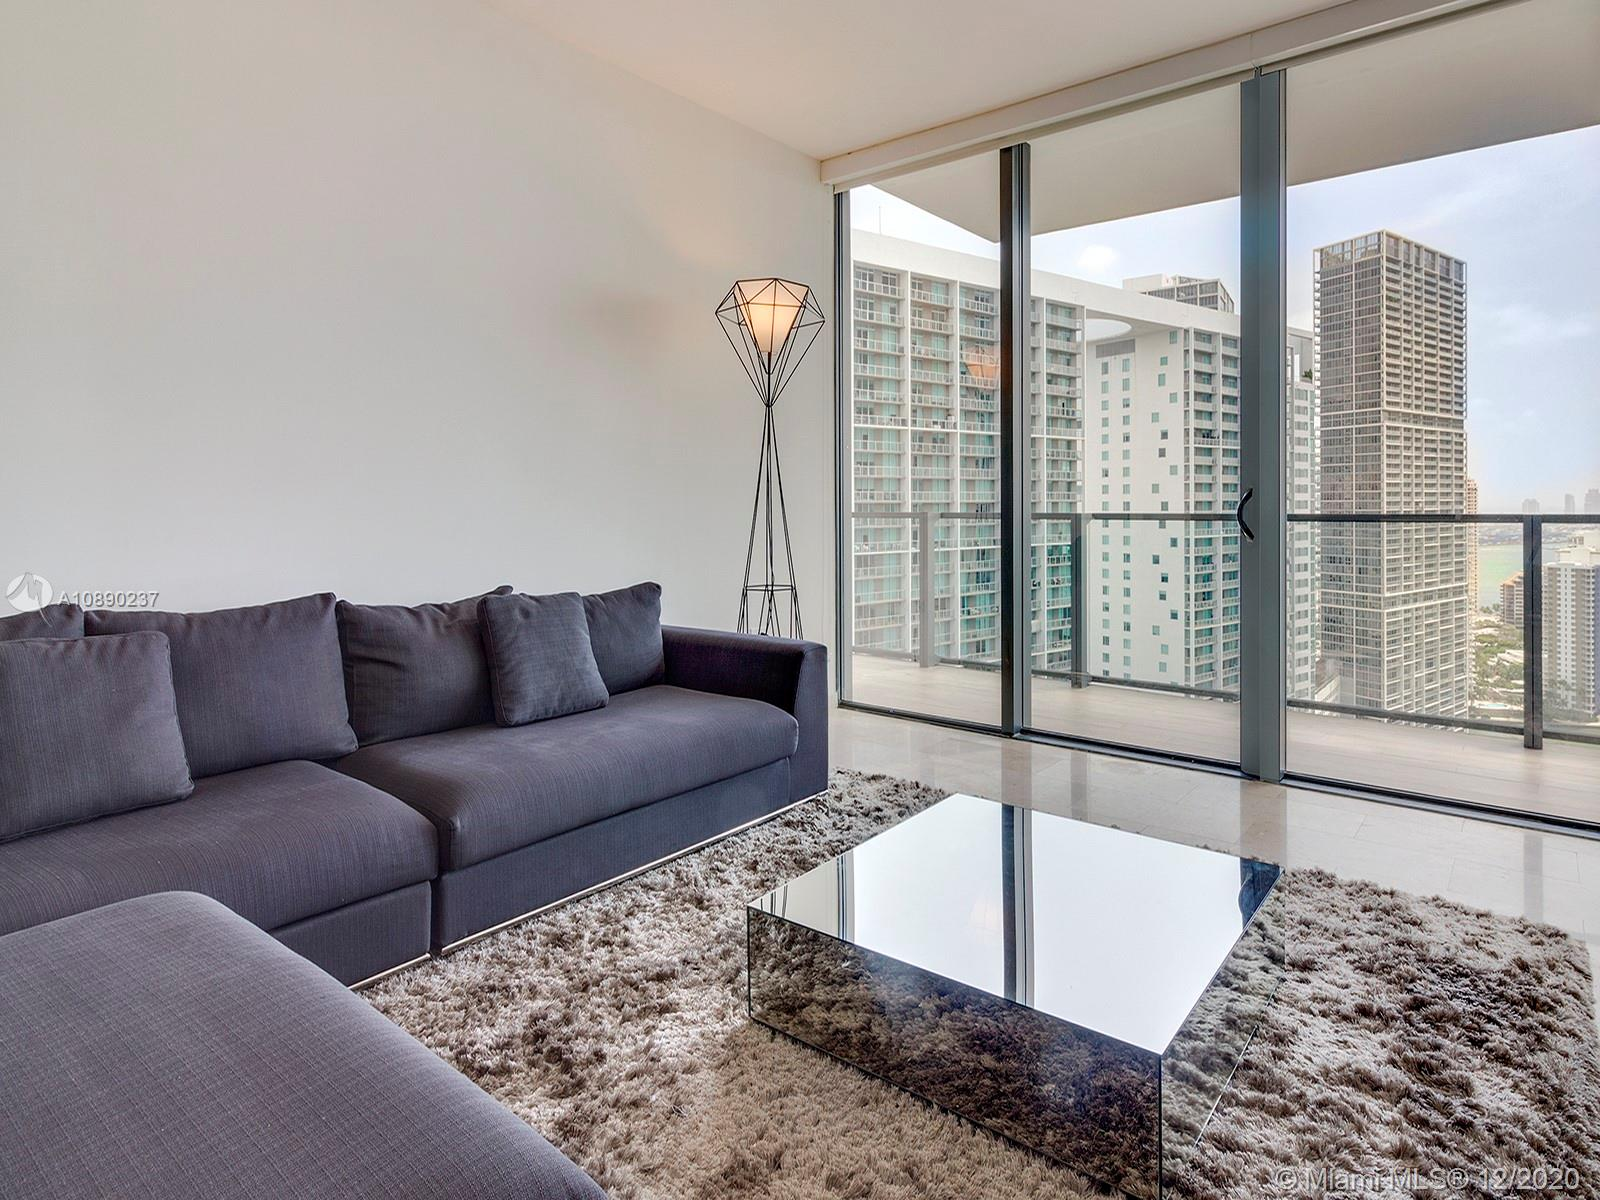 Reach Brickell City Centre #2803 - 68 SE 6th St #2803, Miami, FL 33131